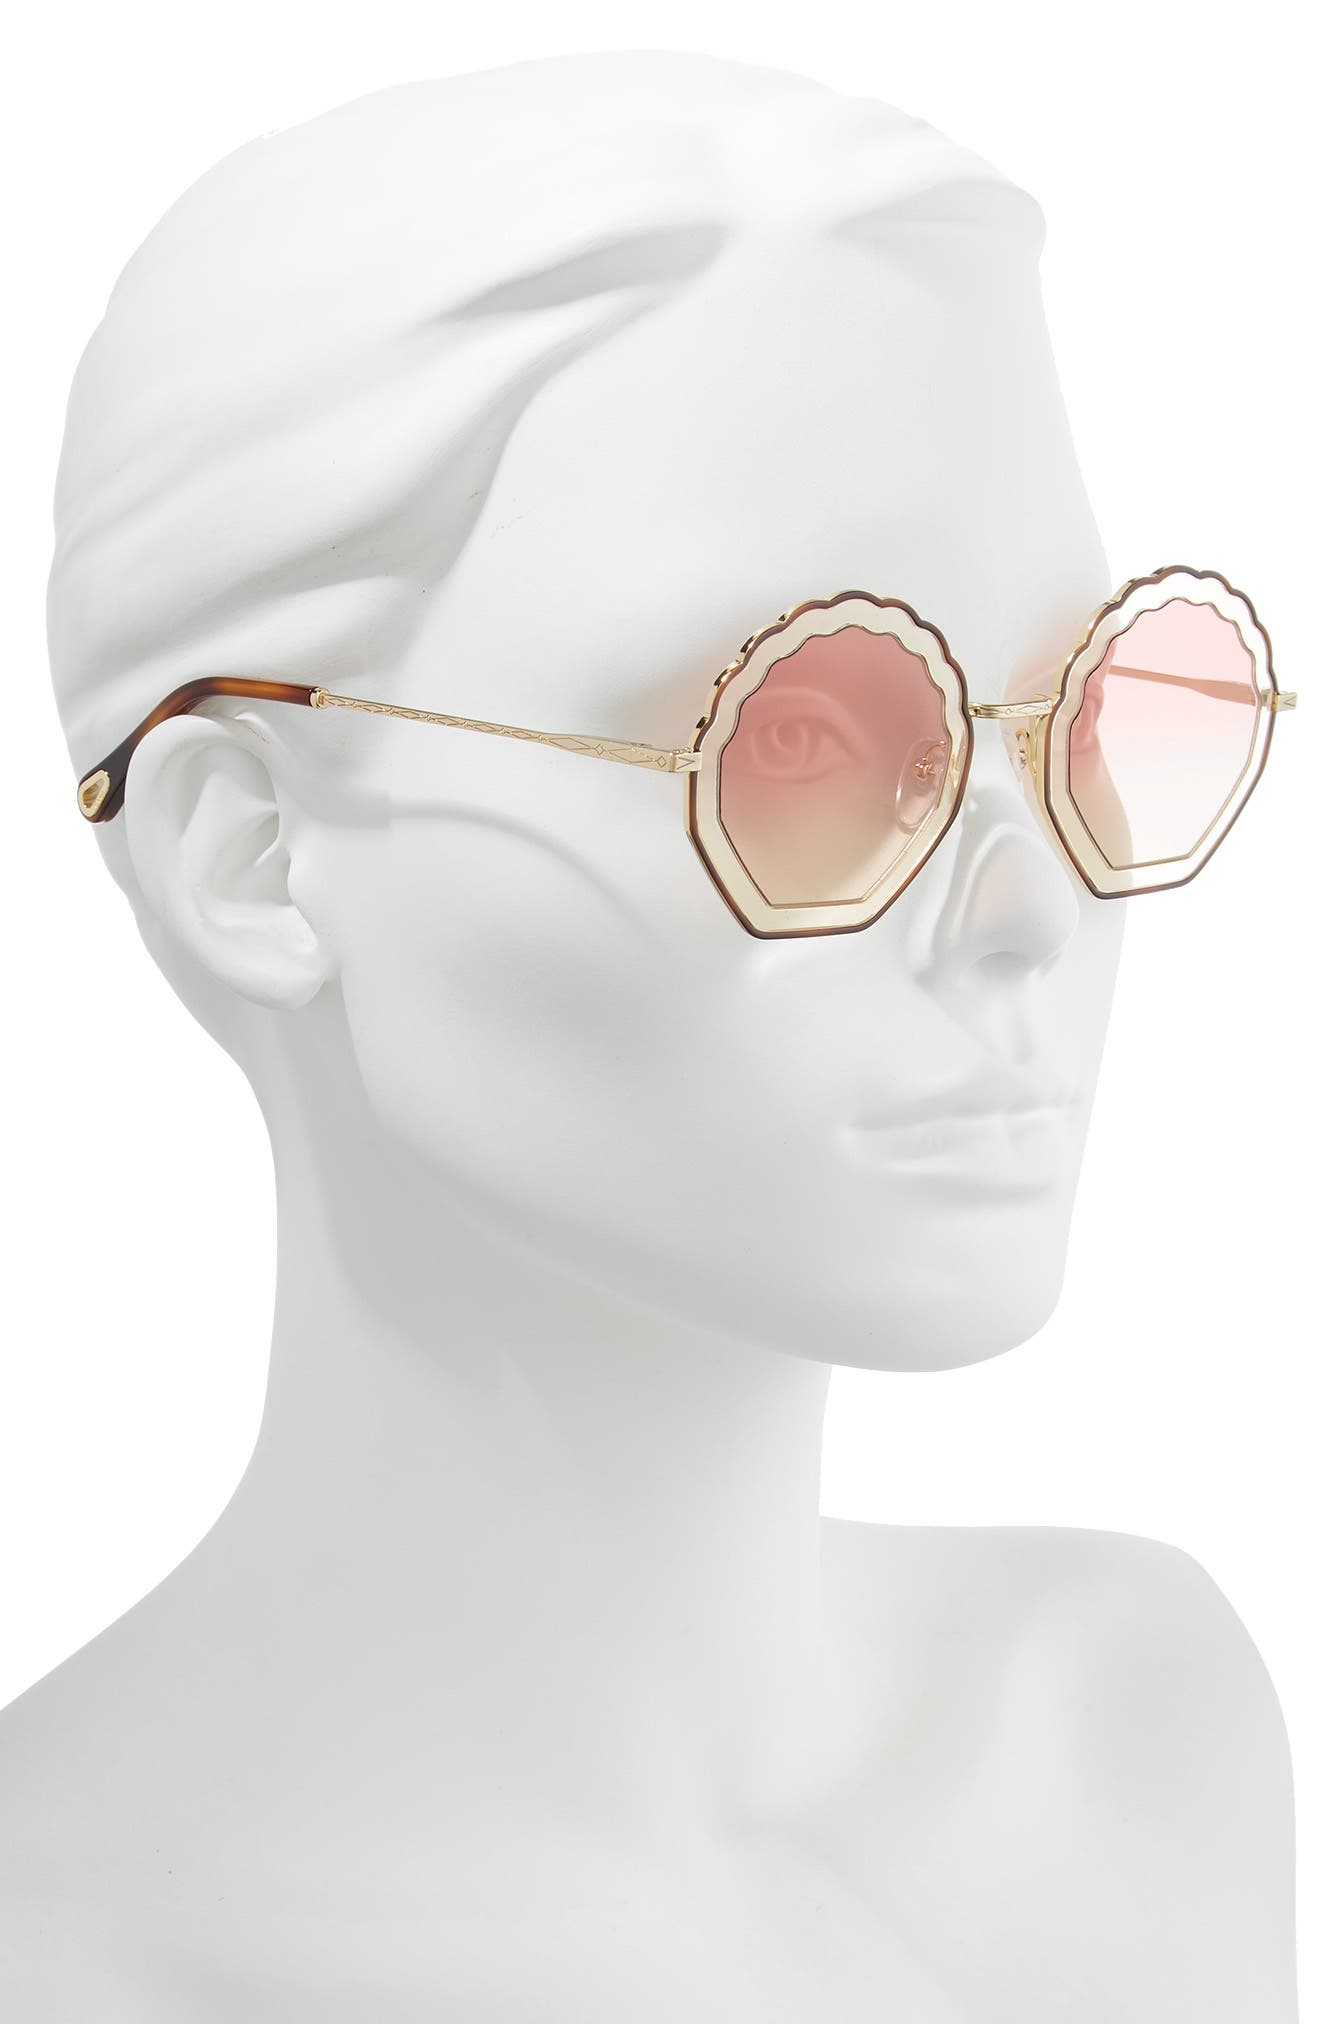 Tally 56mm Scalloped Sunglasses,                             Alternate thumbnail 2, color,                             HAVANA/ SAND/ GRADIENT ROSE